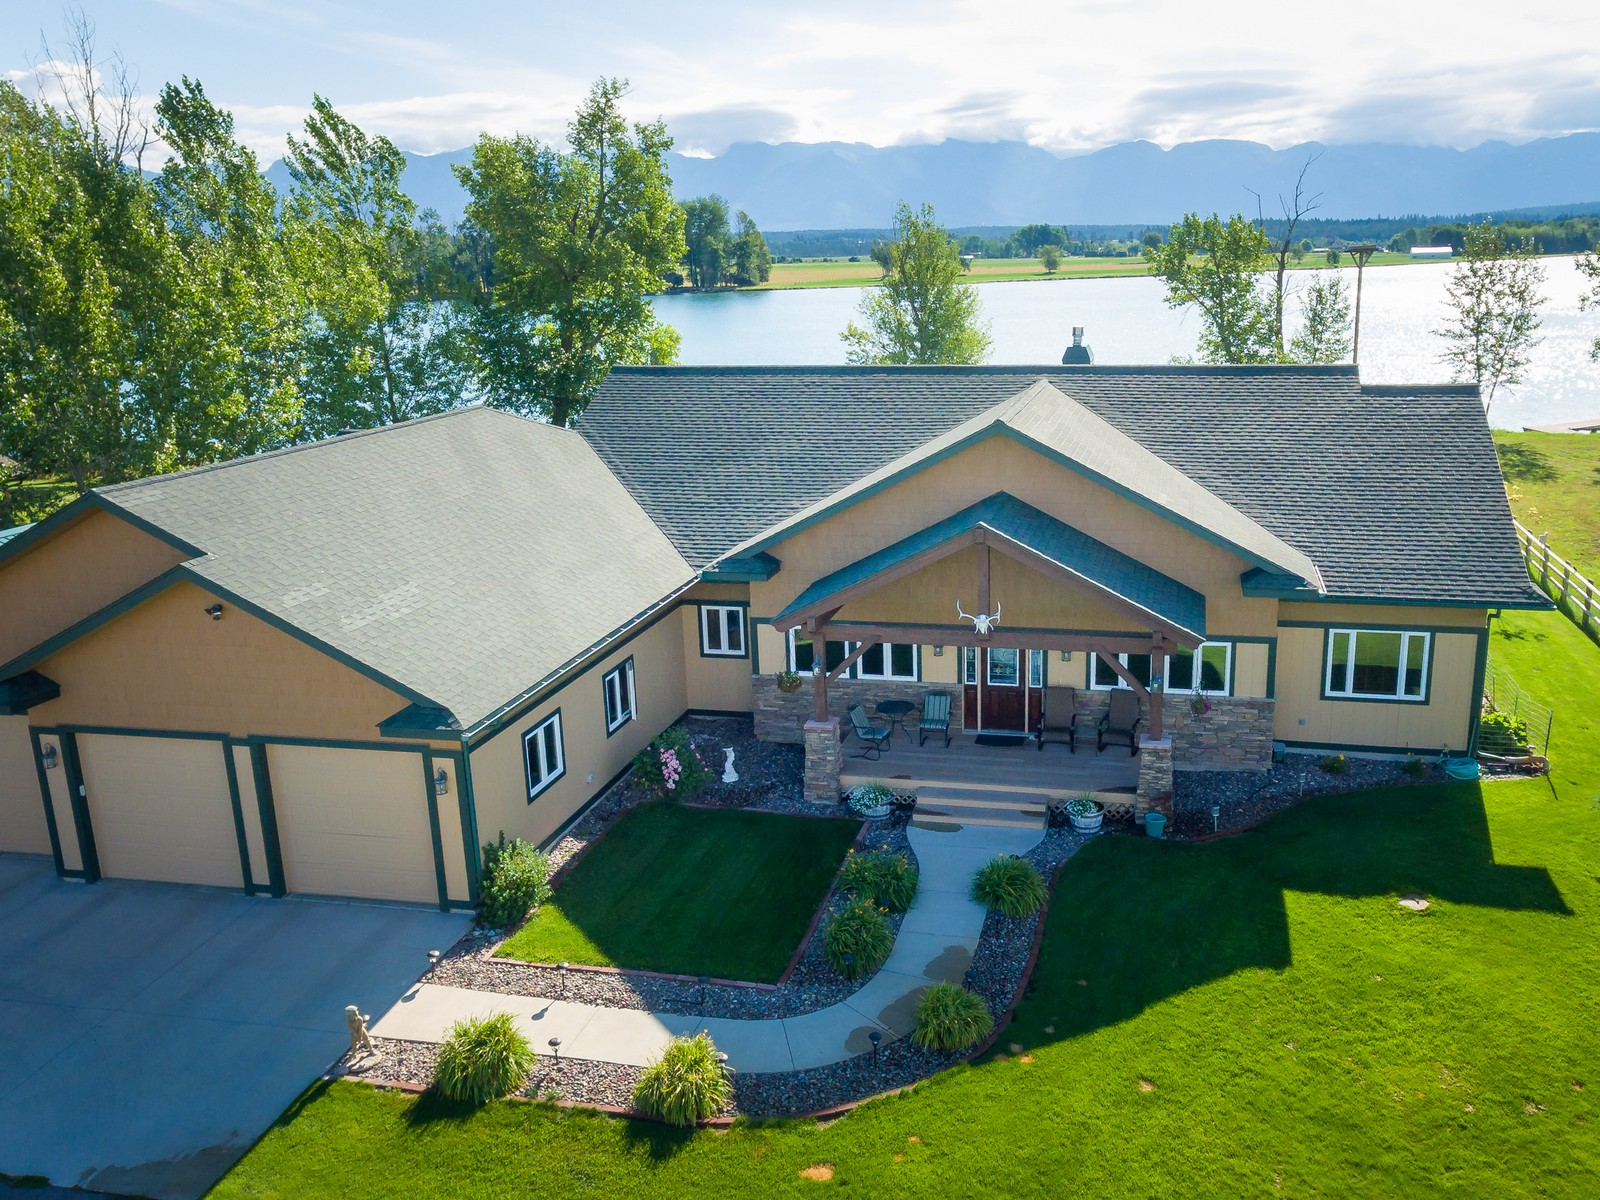 Single Family Home for Sale at Flathead River Living 52 Mountain Star Kalispell, Montana, 59901 United States